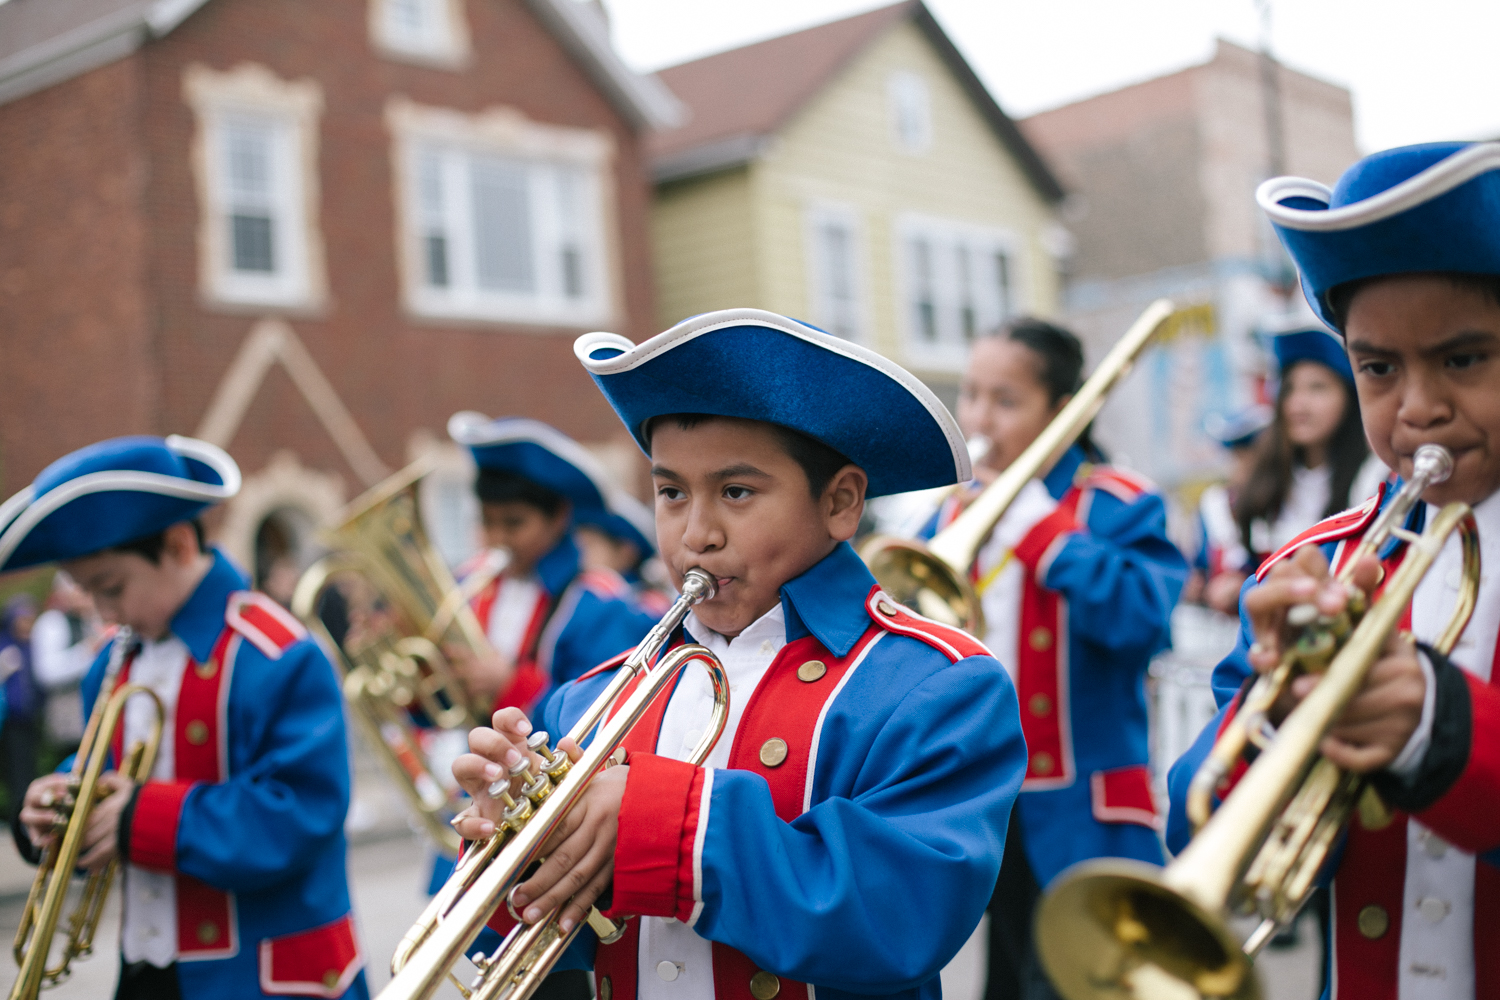 One of the niños from the Tonti Elementary School Marching Band toots his horn during the Cinco de Mayo parade in the Little Village neighborhood. 4/24